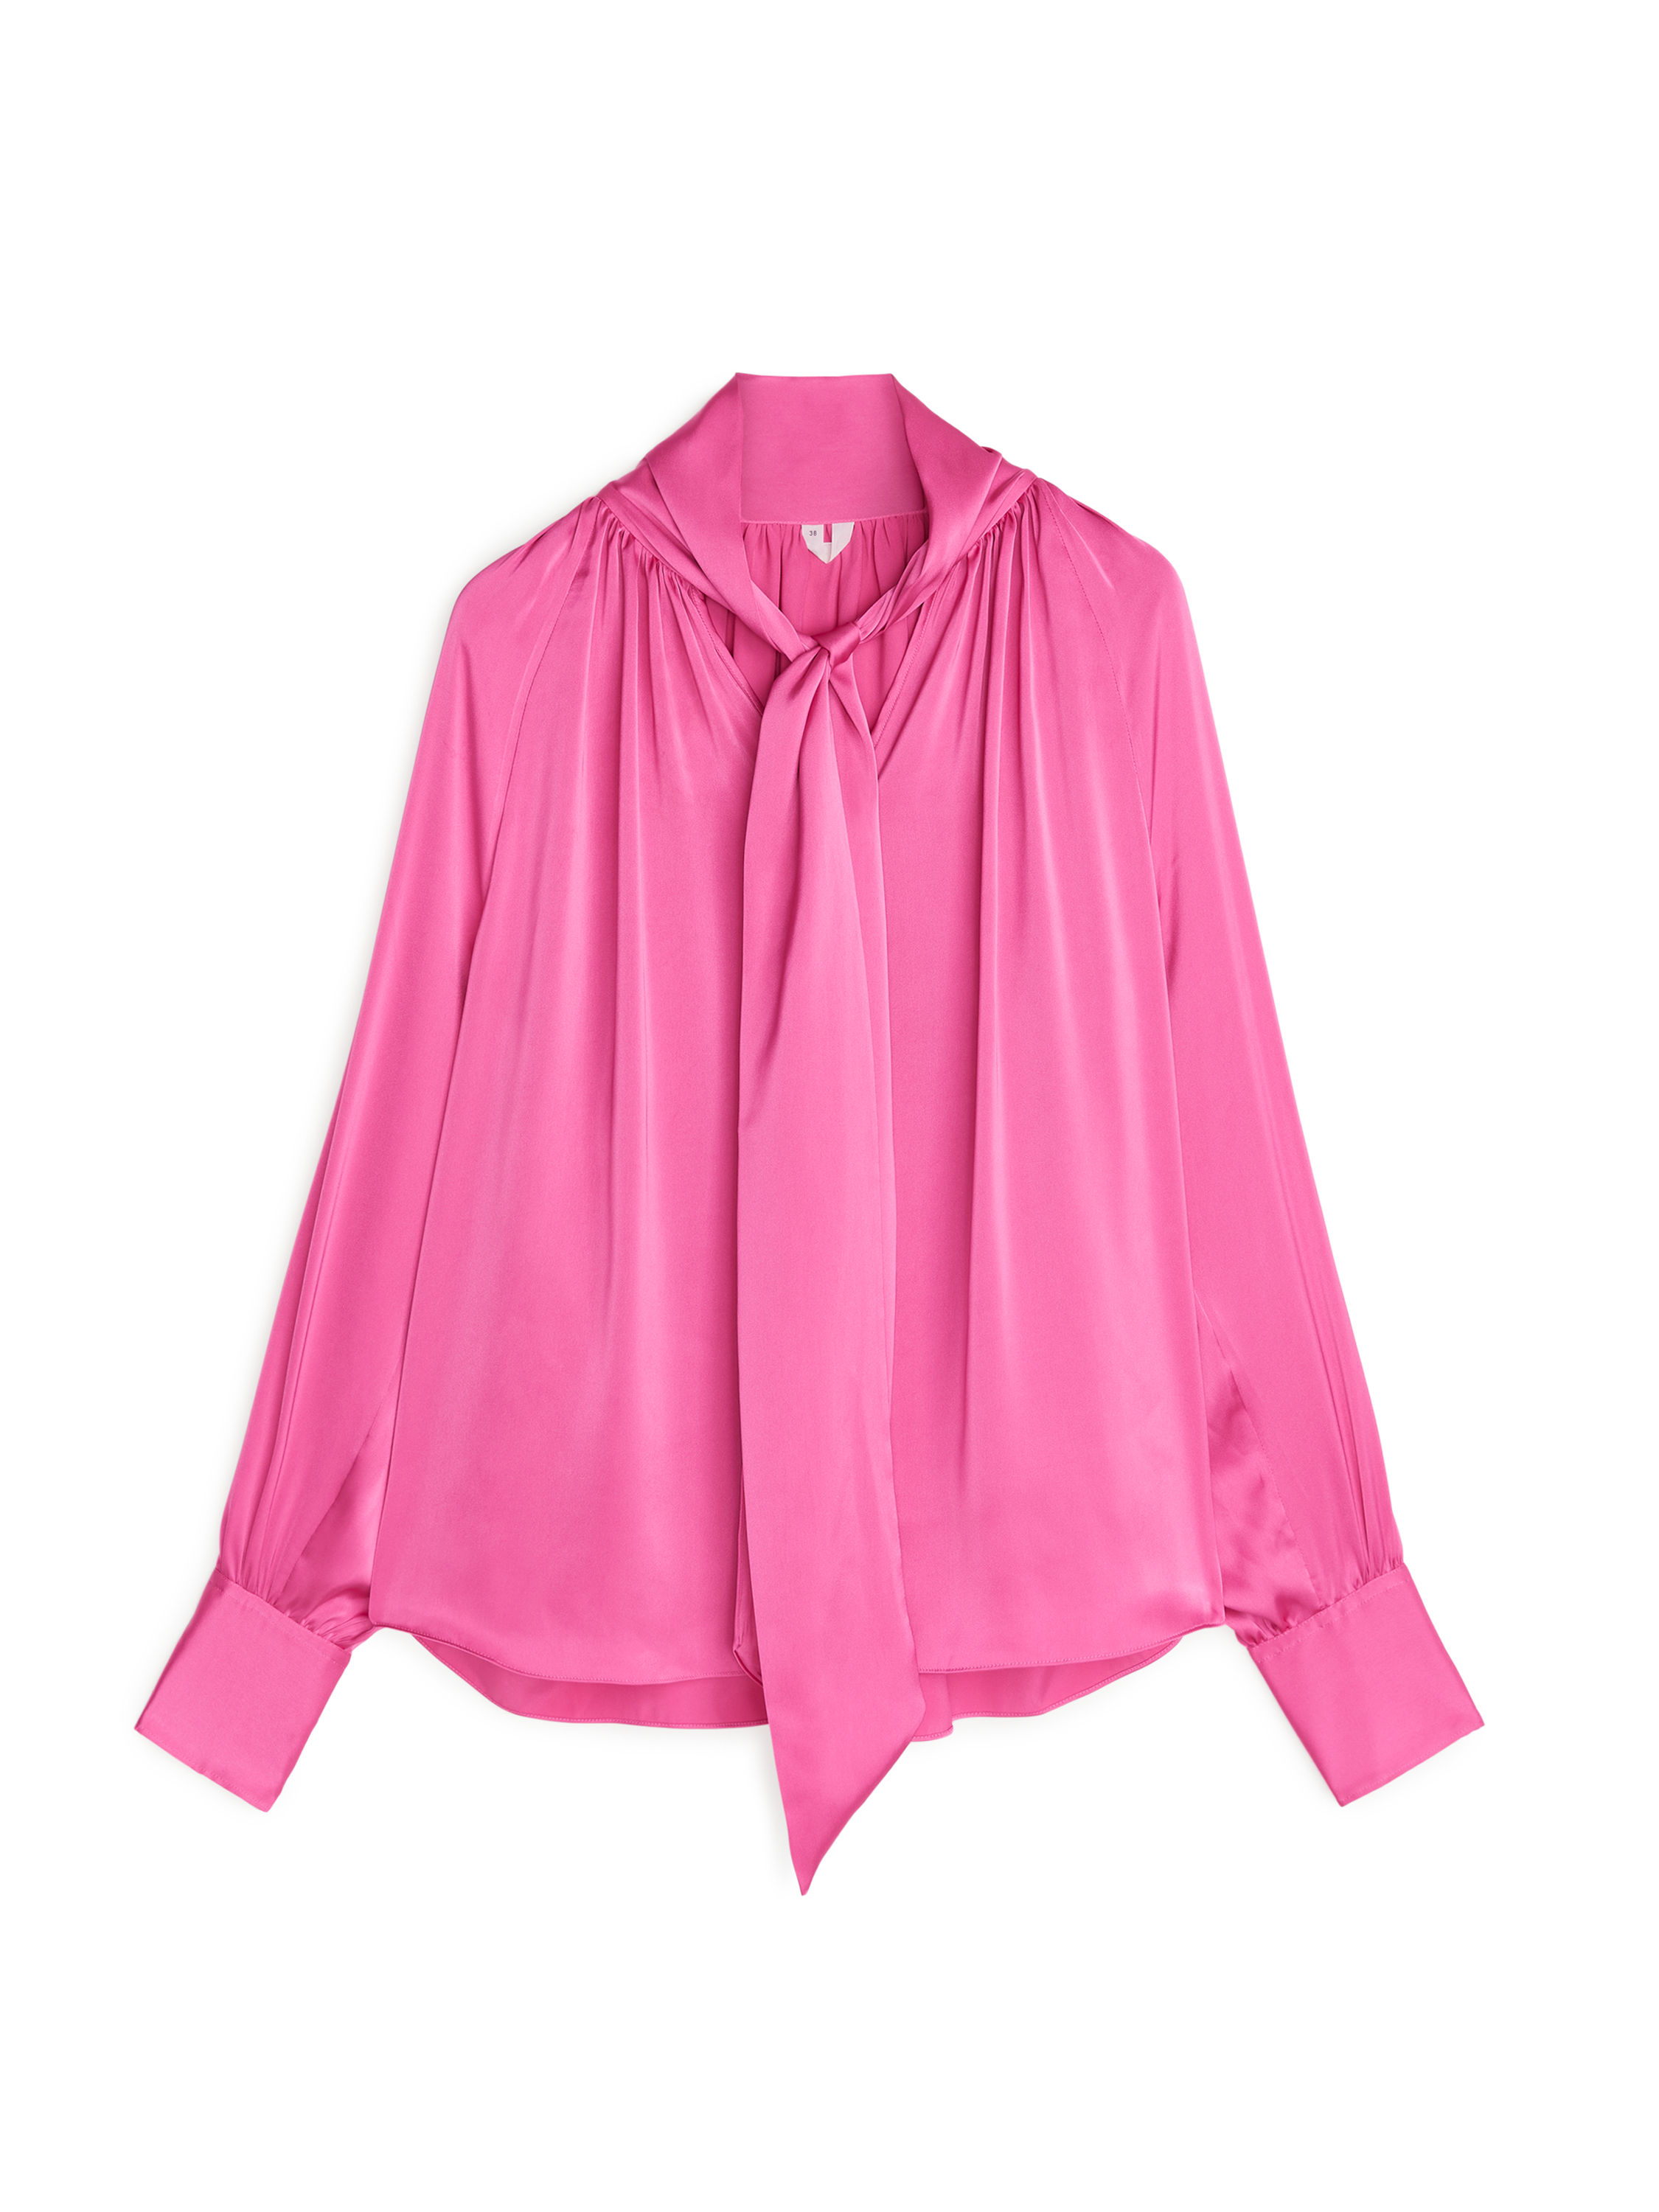 Fabric Swatch image of Arket tie neck satin blouse in pink